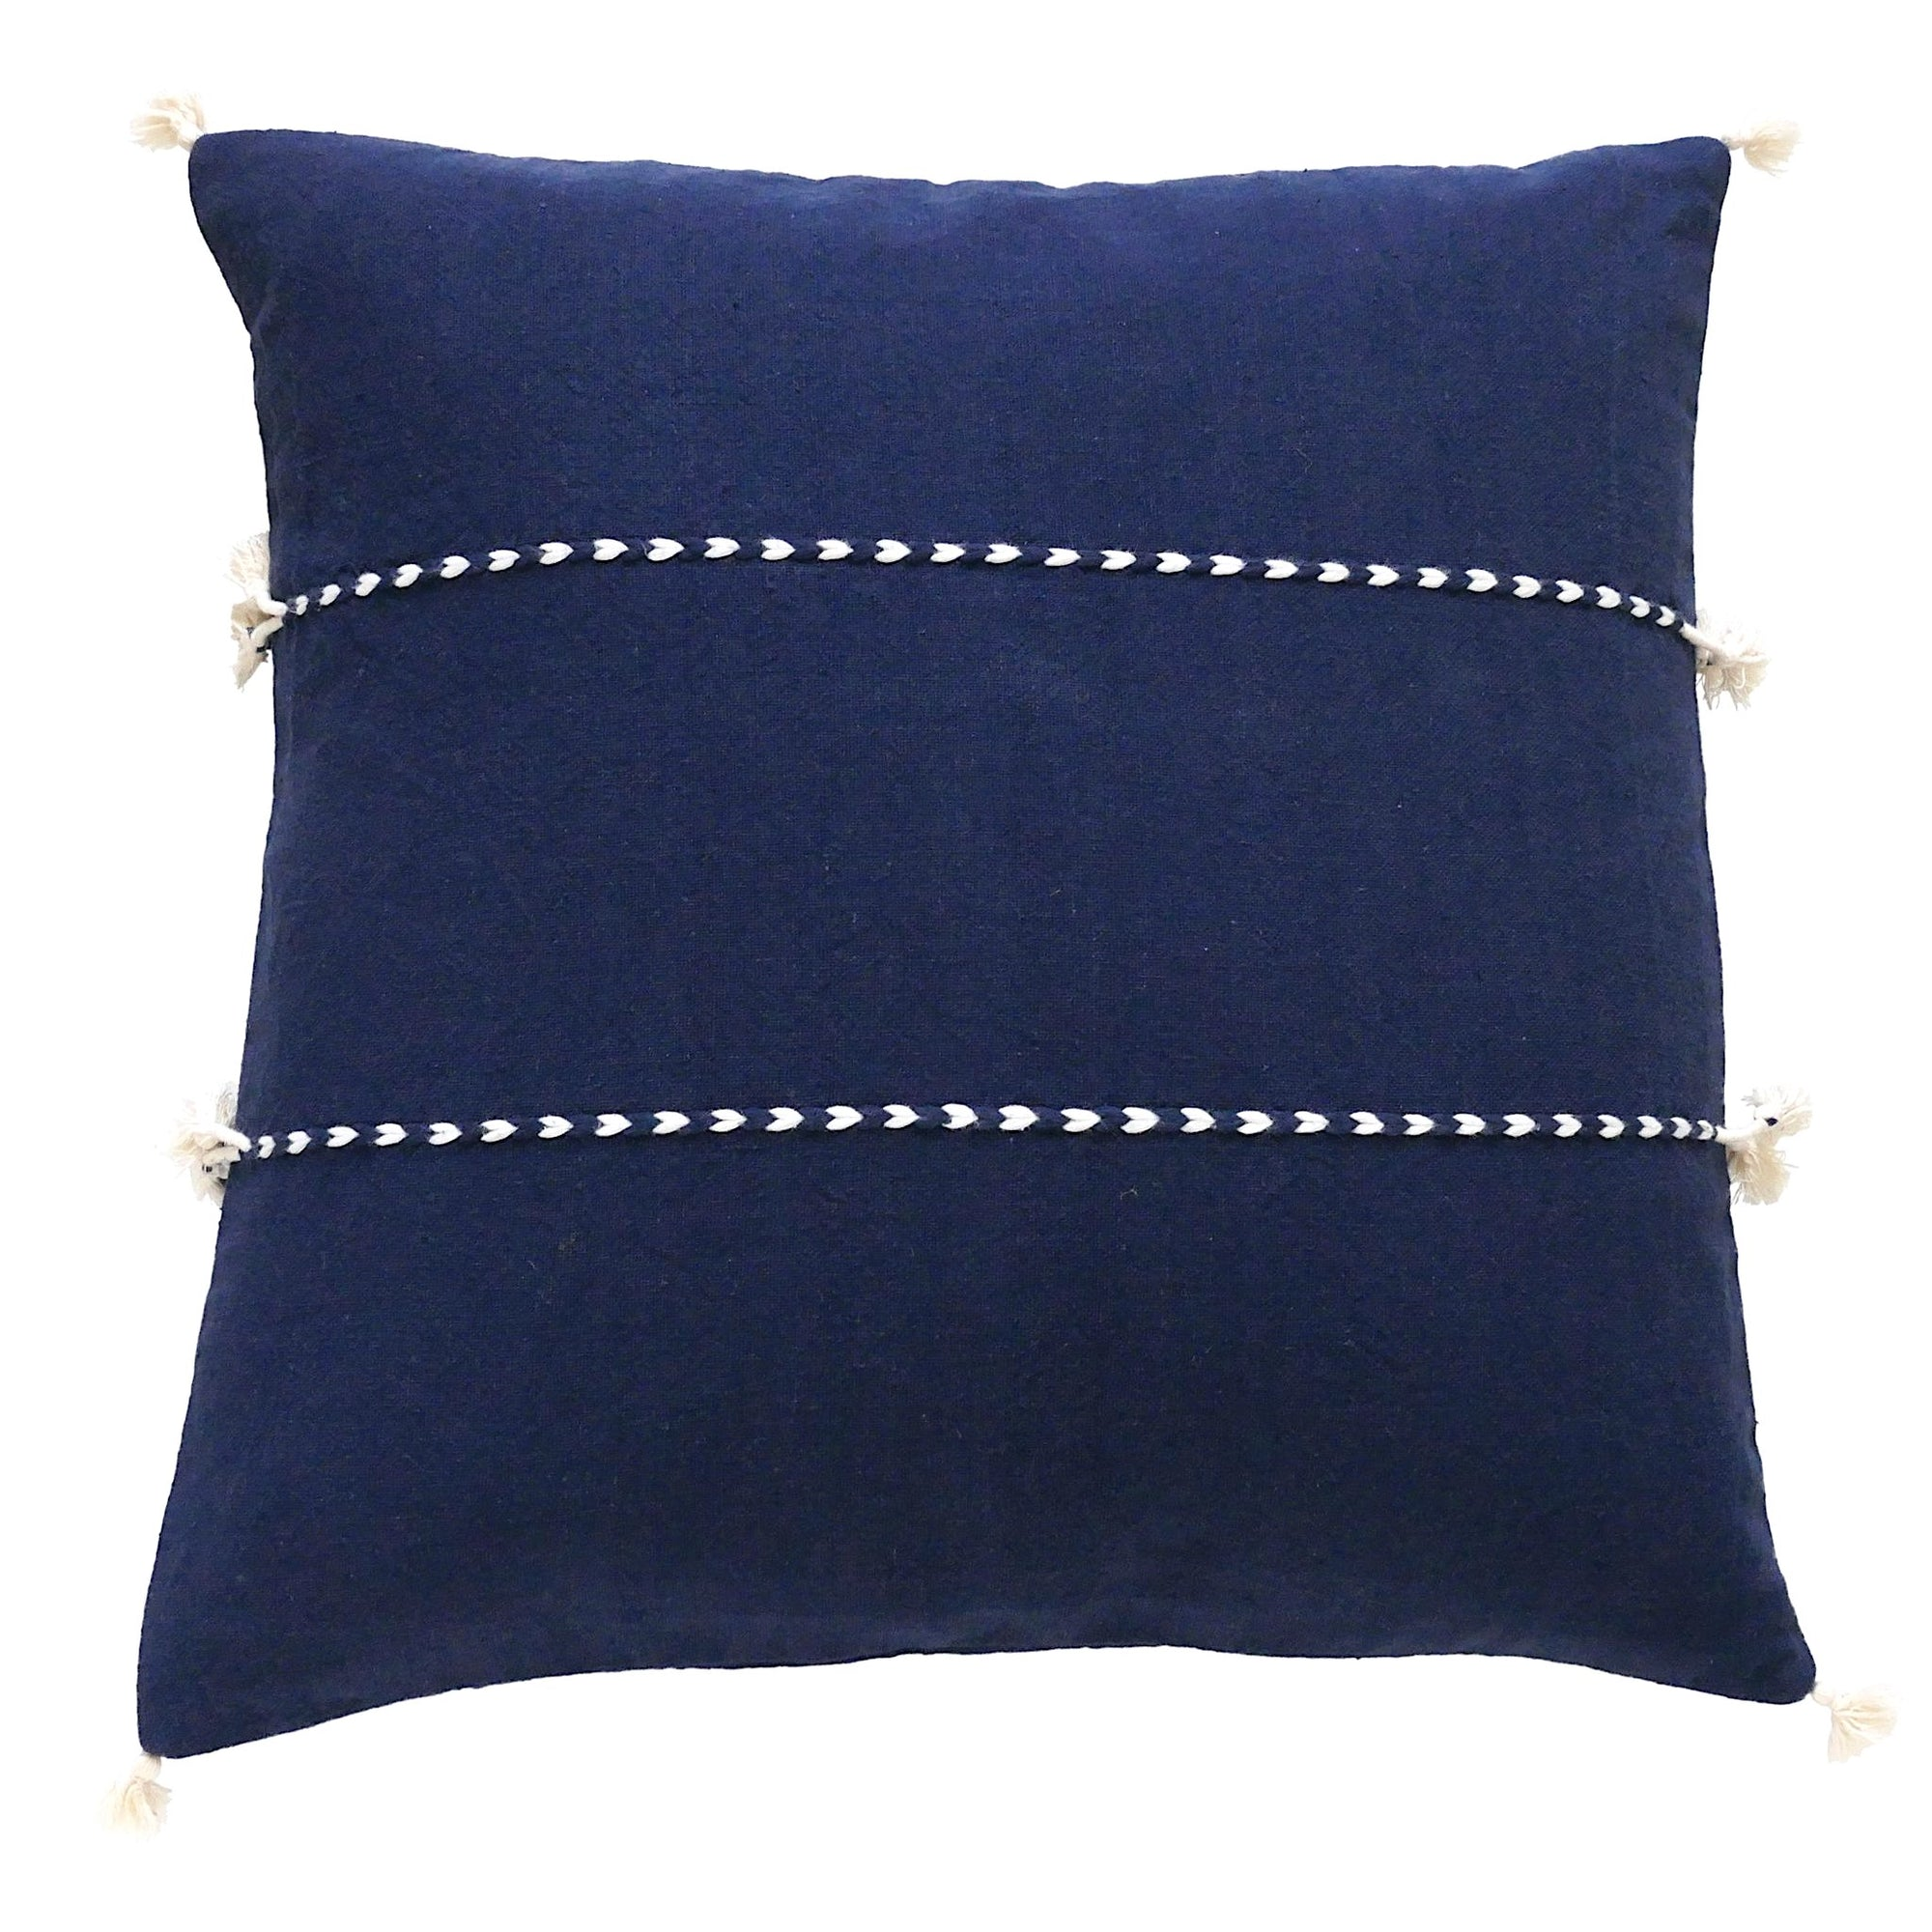 Boogie Blues cushion